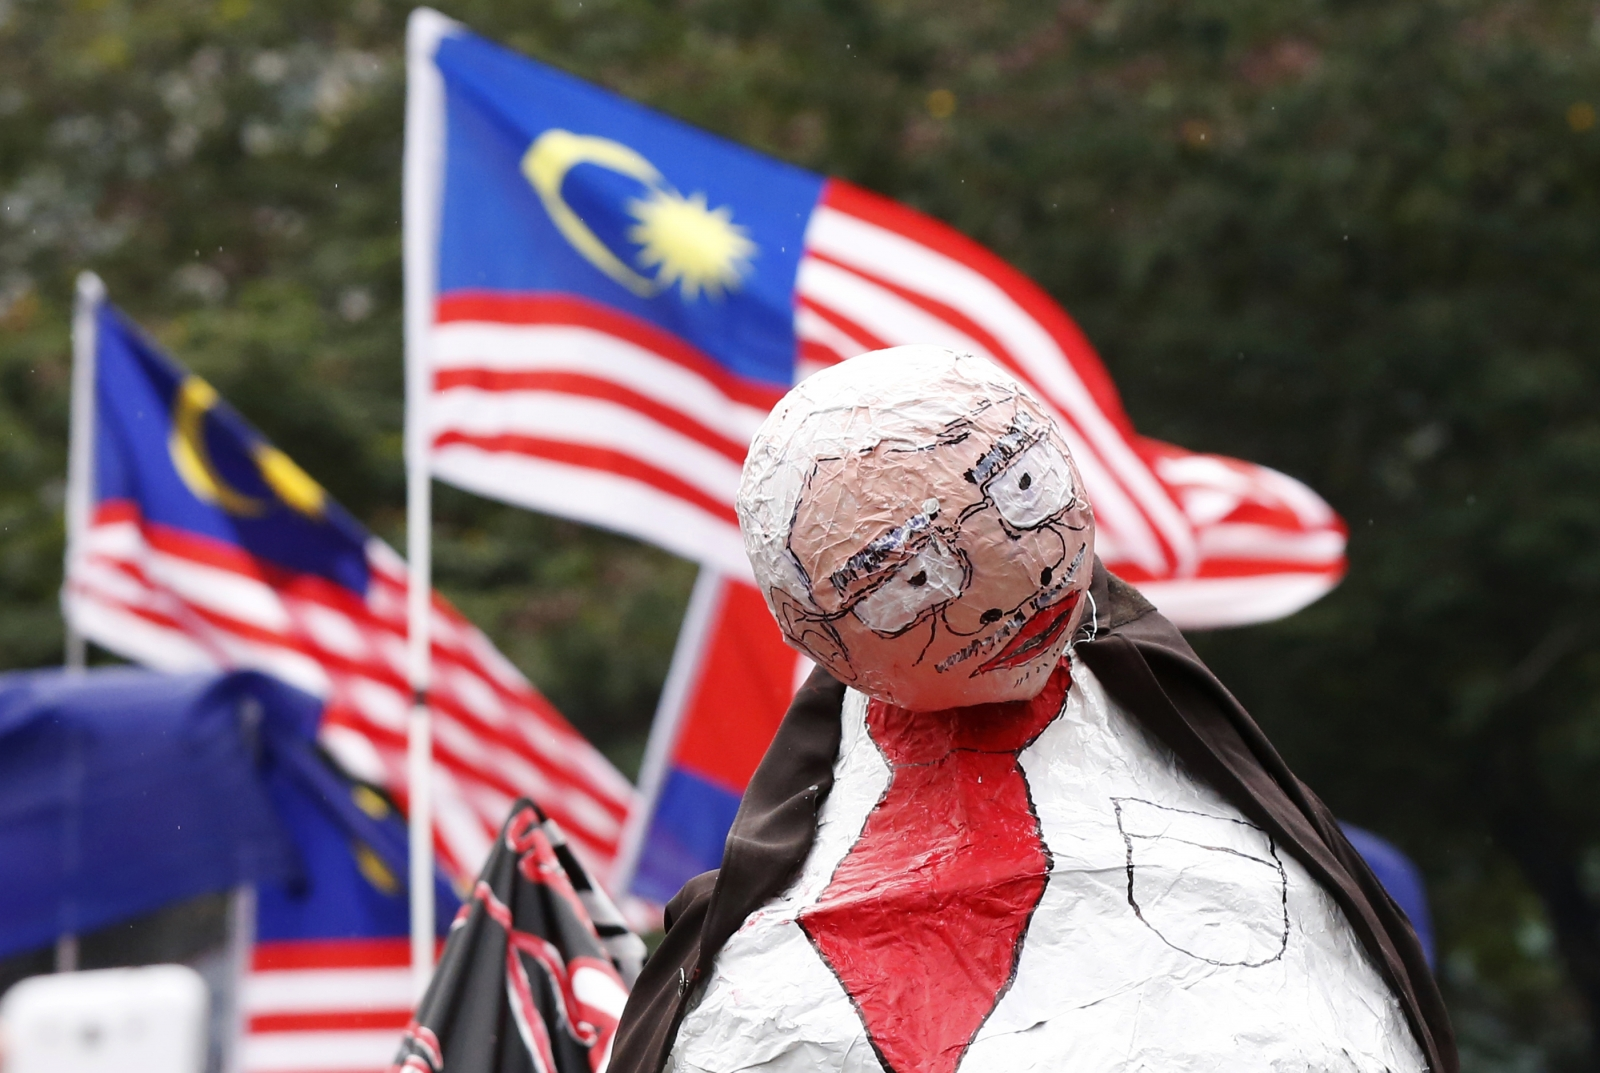 Cartoonist in Malaysia charged with